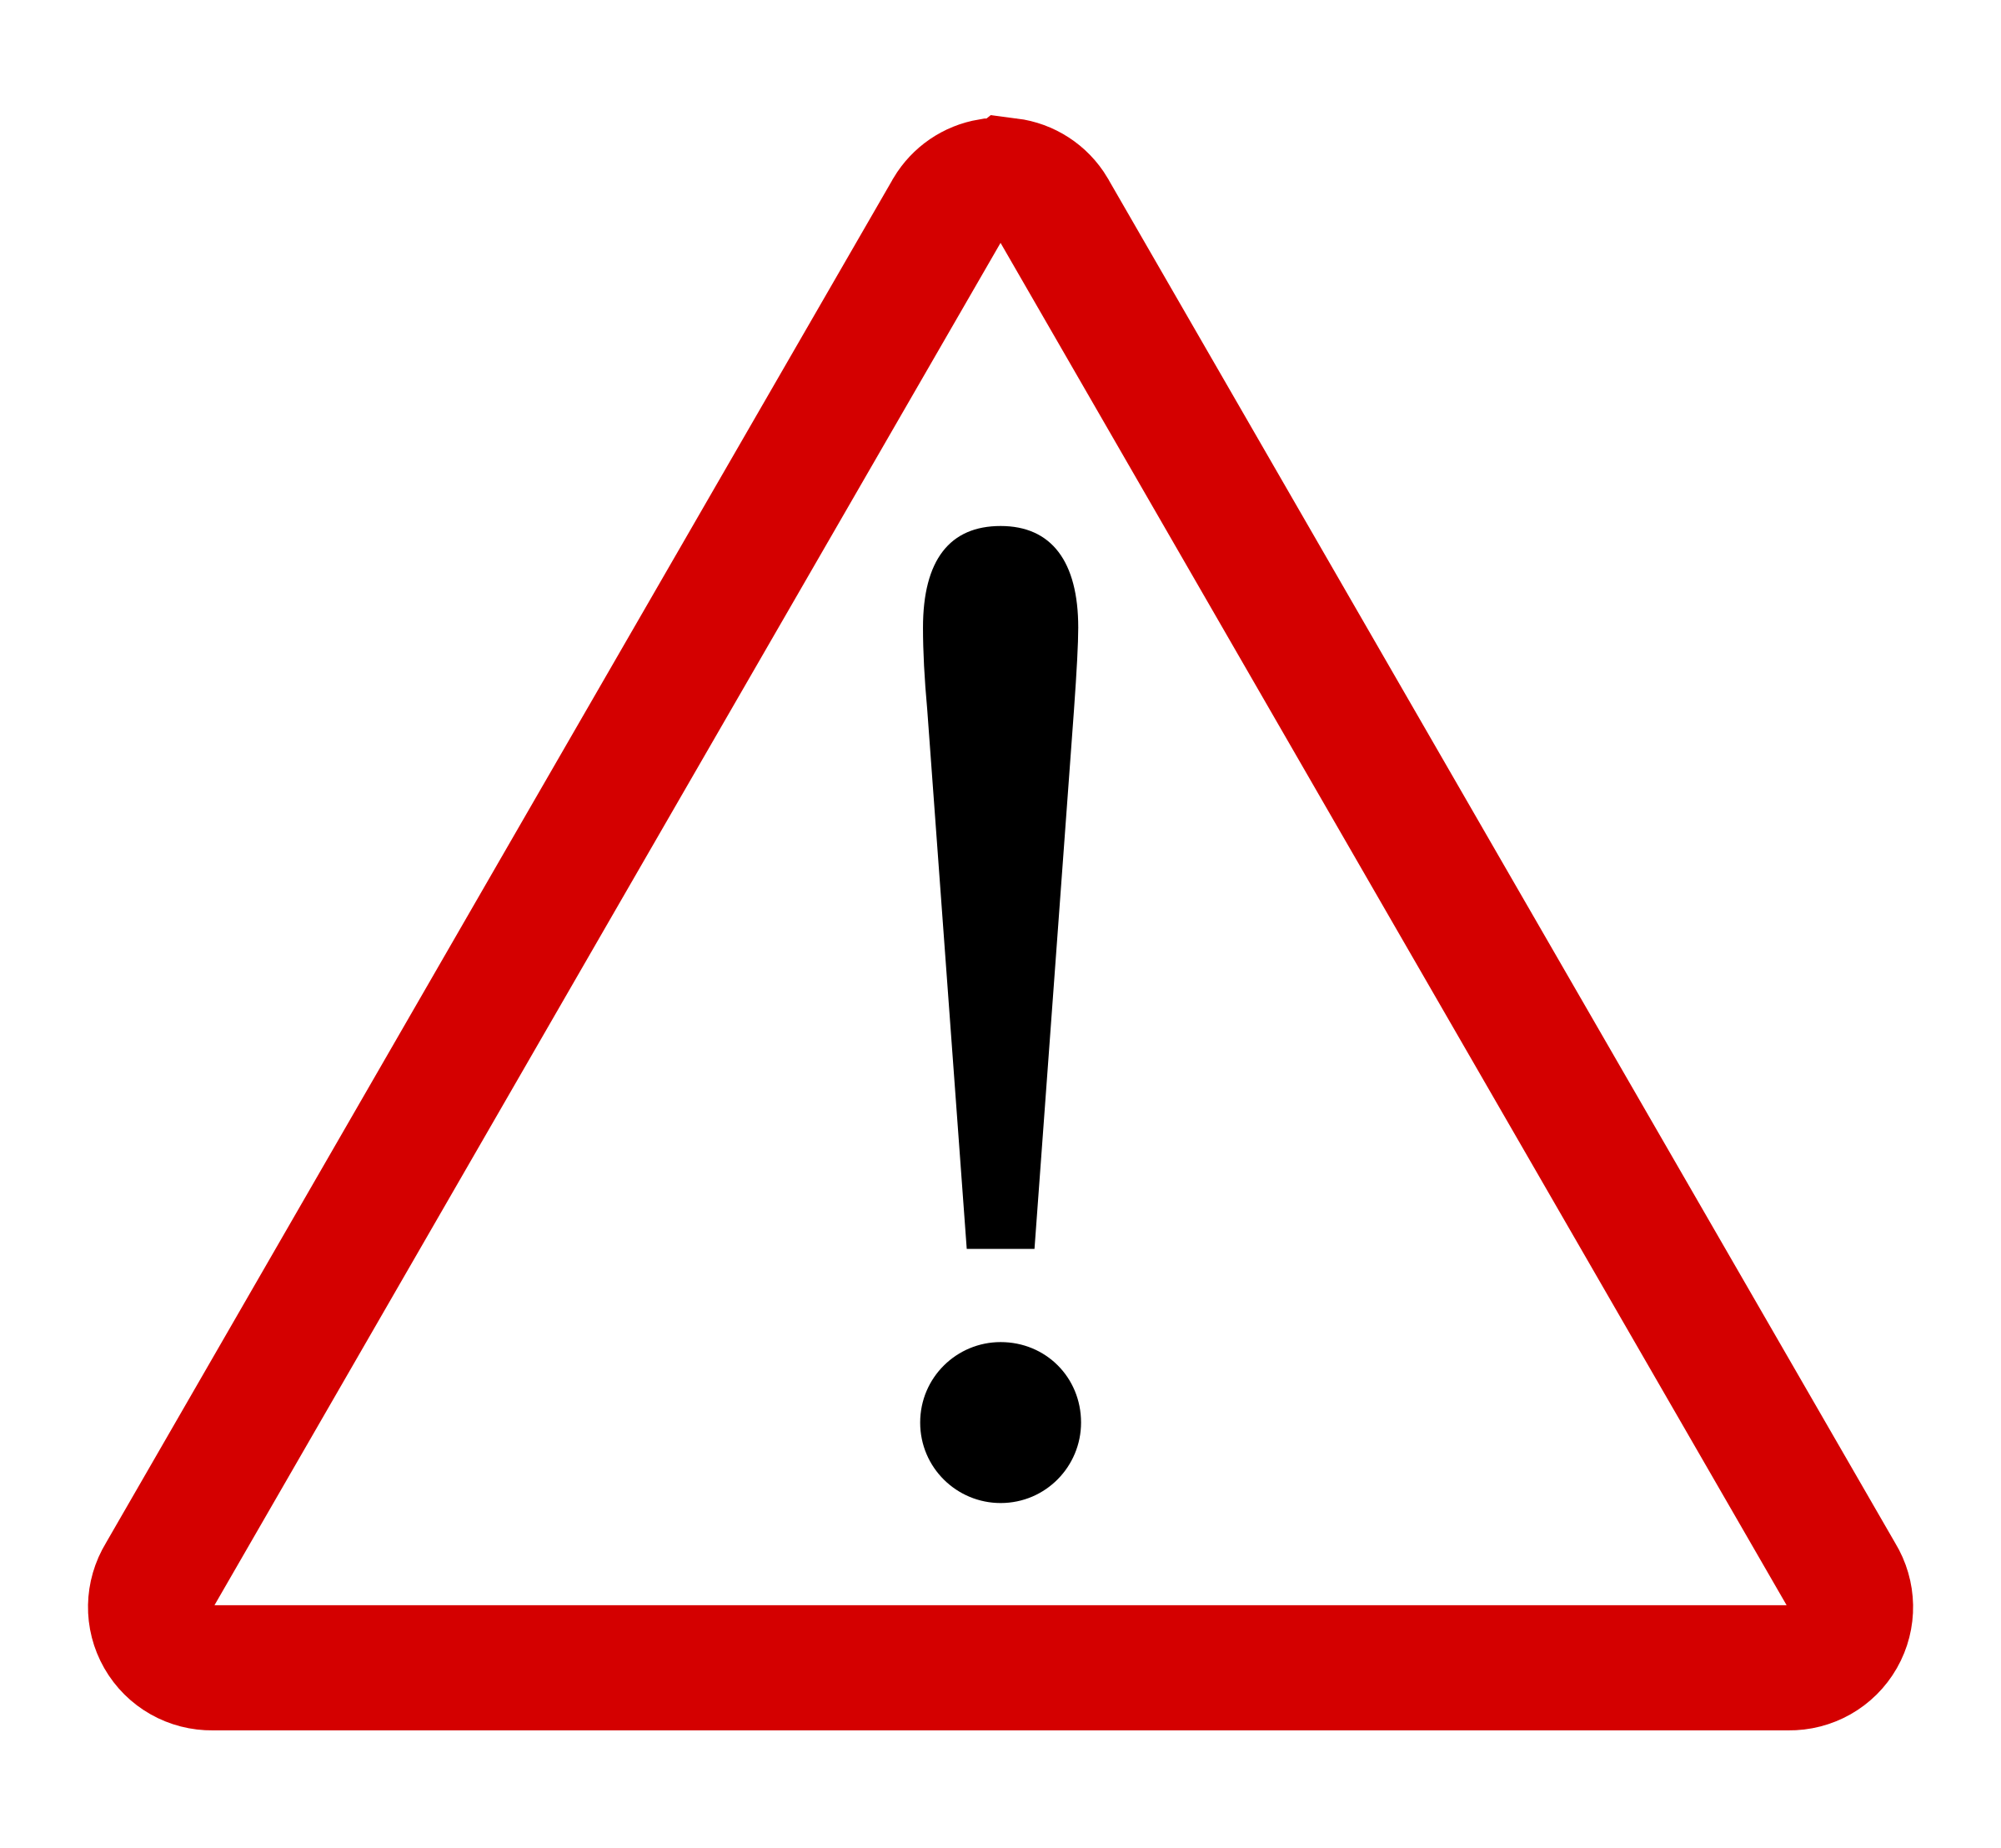 Warning symbol png. Icons free and downloads